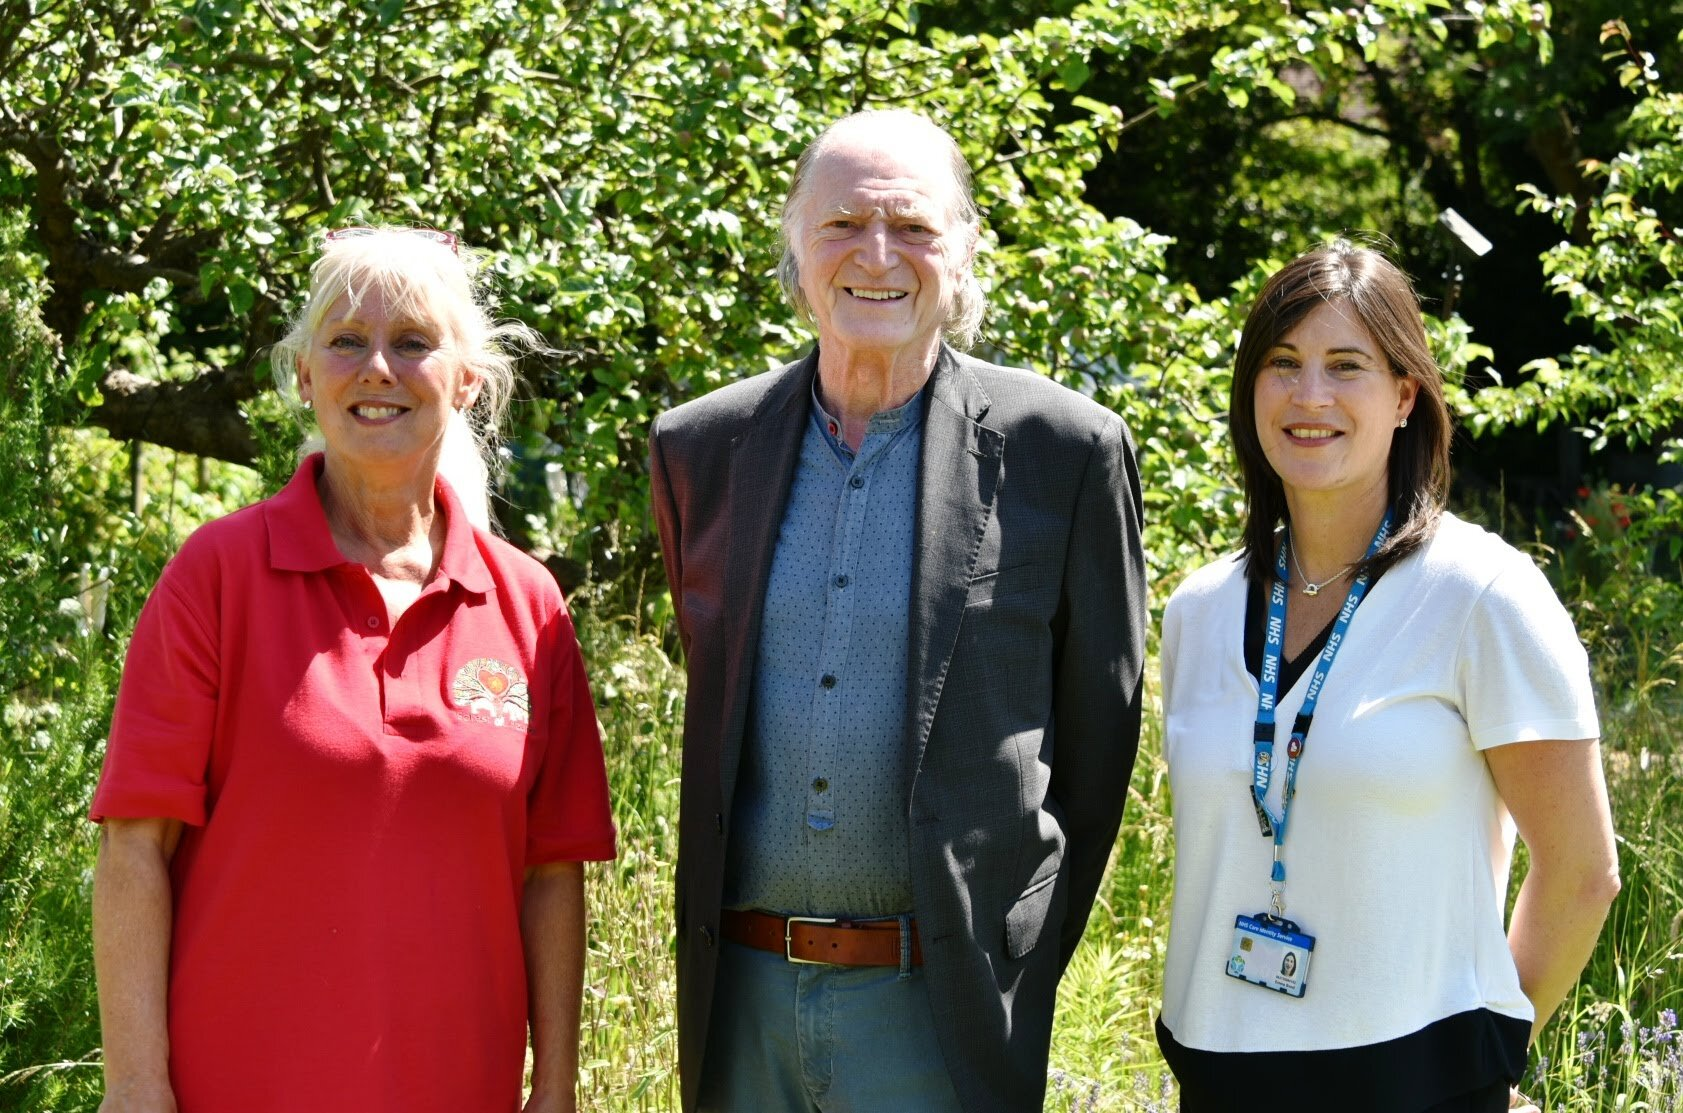 (Left to right): Carole Longden (Forest of Hearts), David Bradley, and Emma Bond (NHS SWFT)